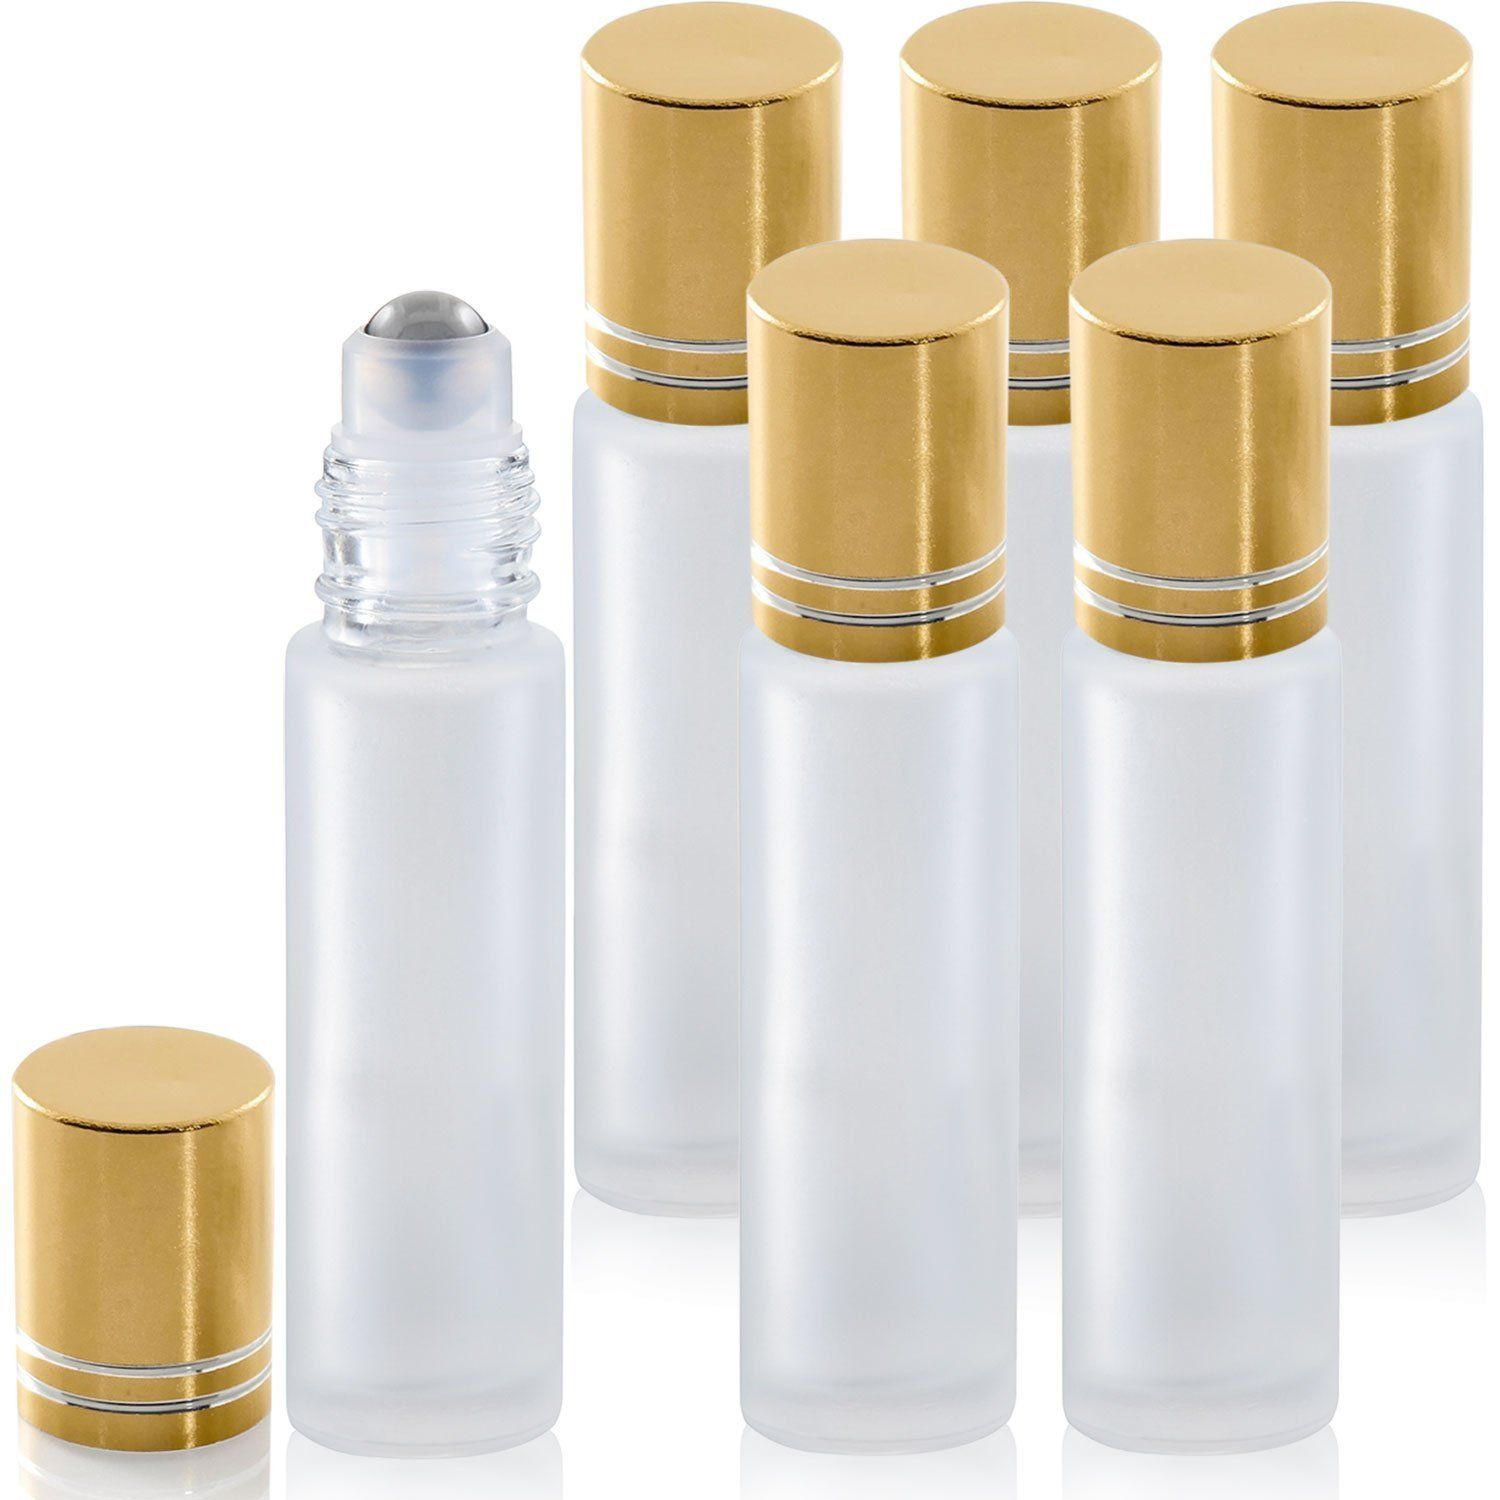 Glass Roller Bottles With Stainless Steel Roller Balls Essential Oil Premium Frosted White Glass Bottles 10ml Metal Balls Roll On Bottles For Aromatherapy Perfu